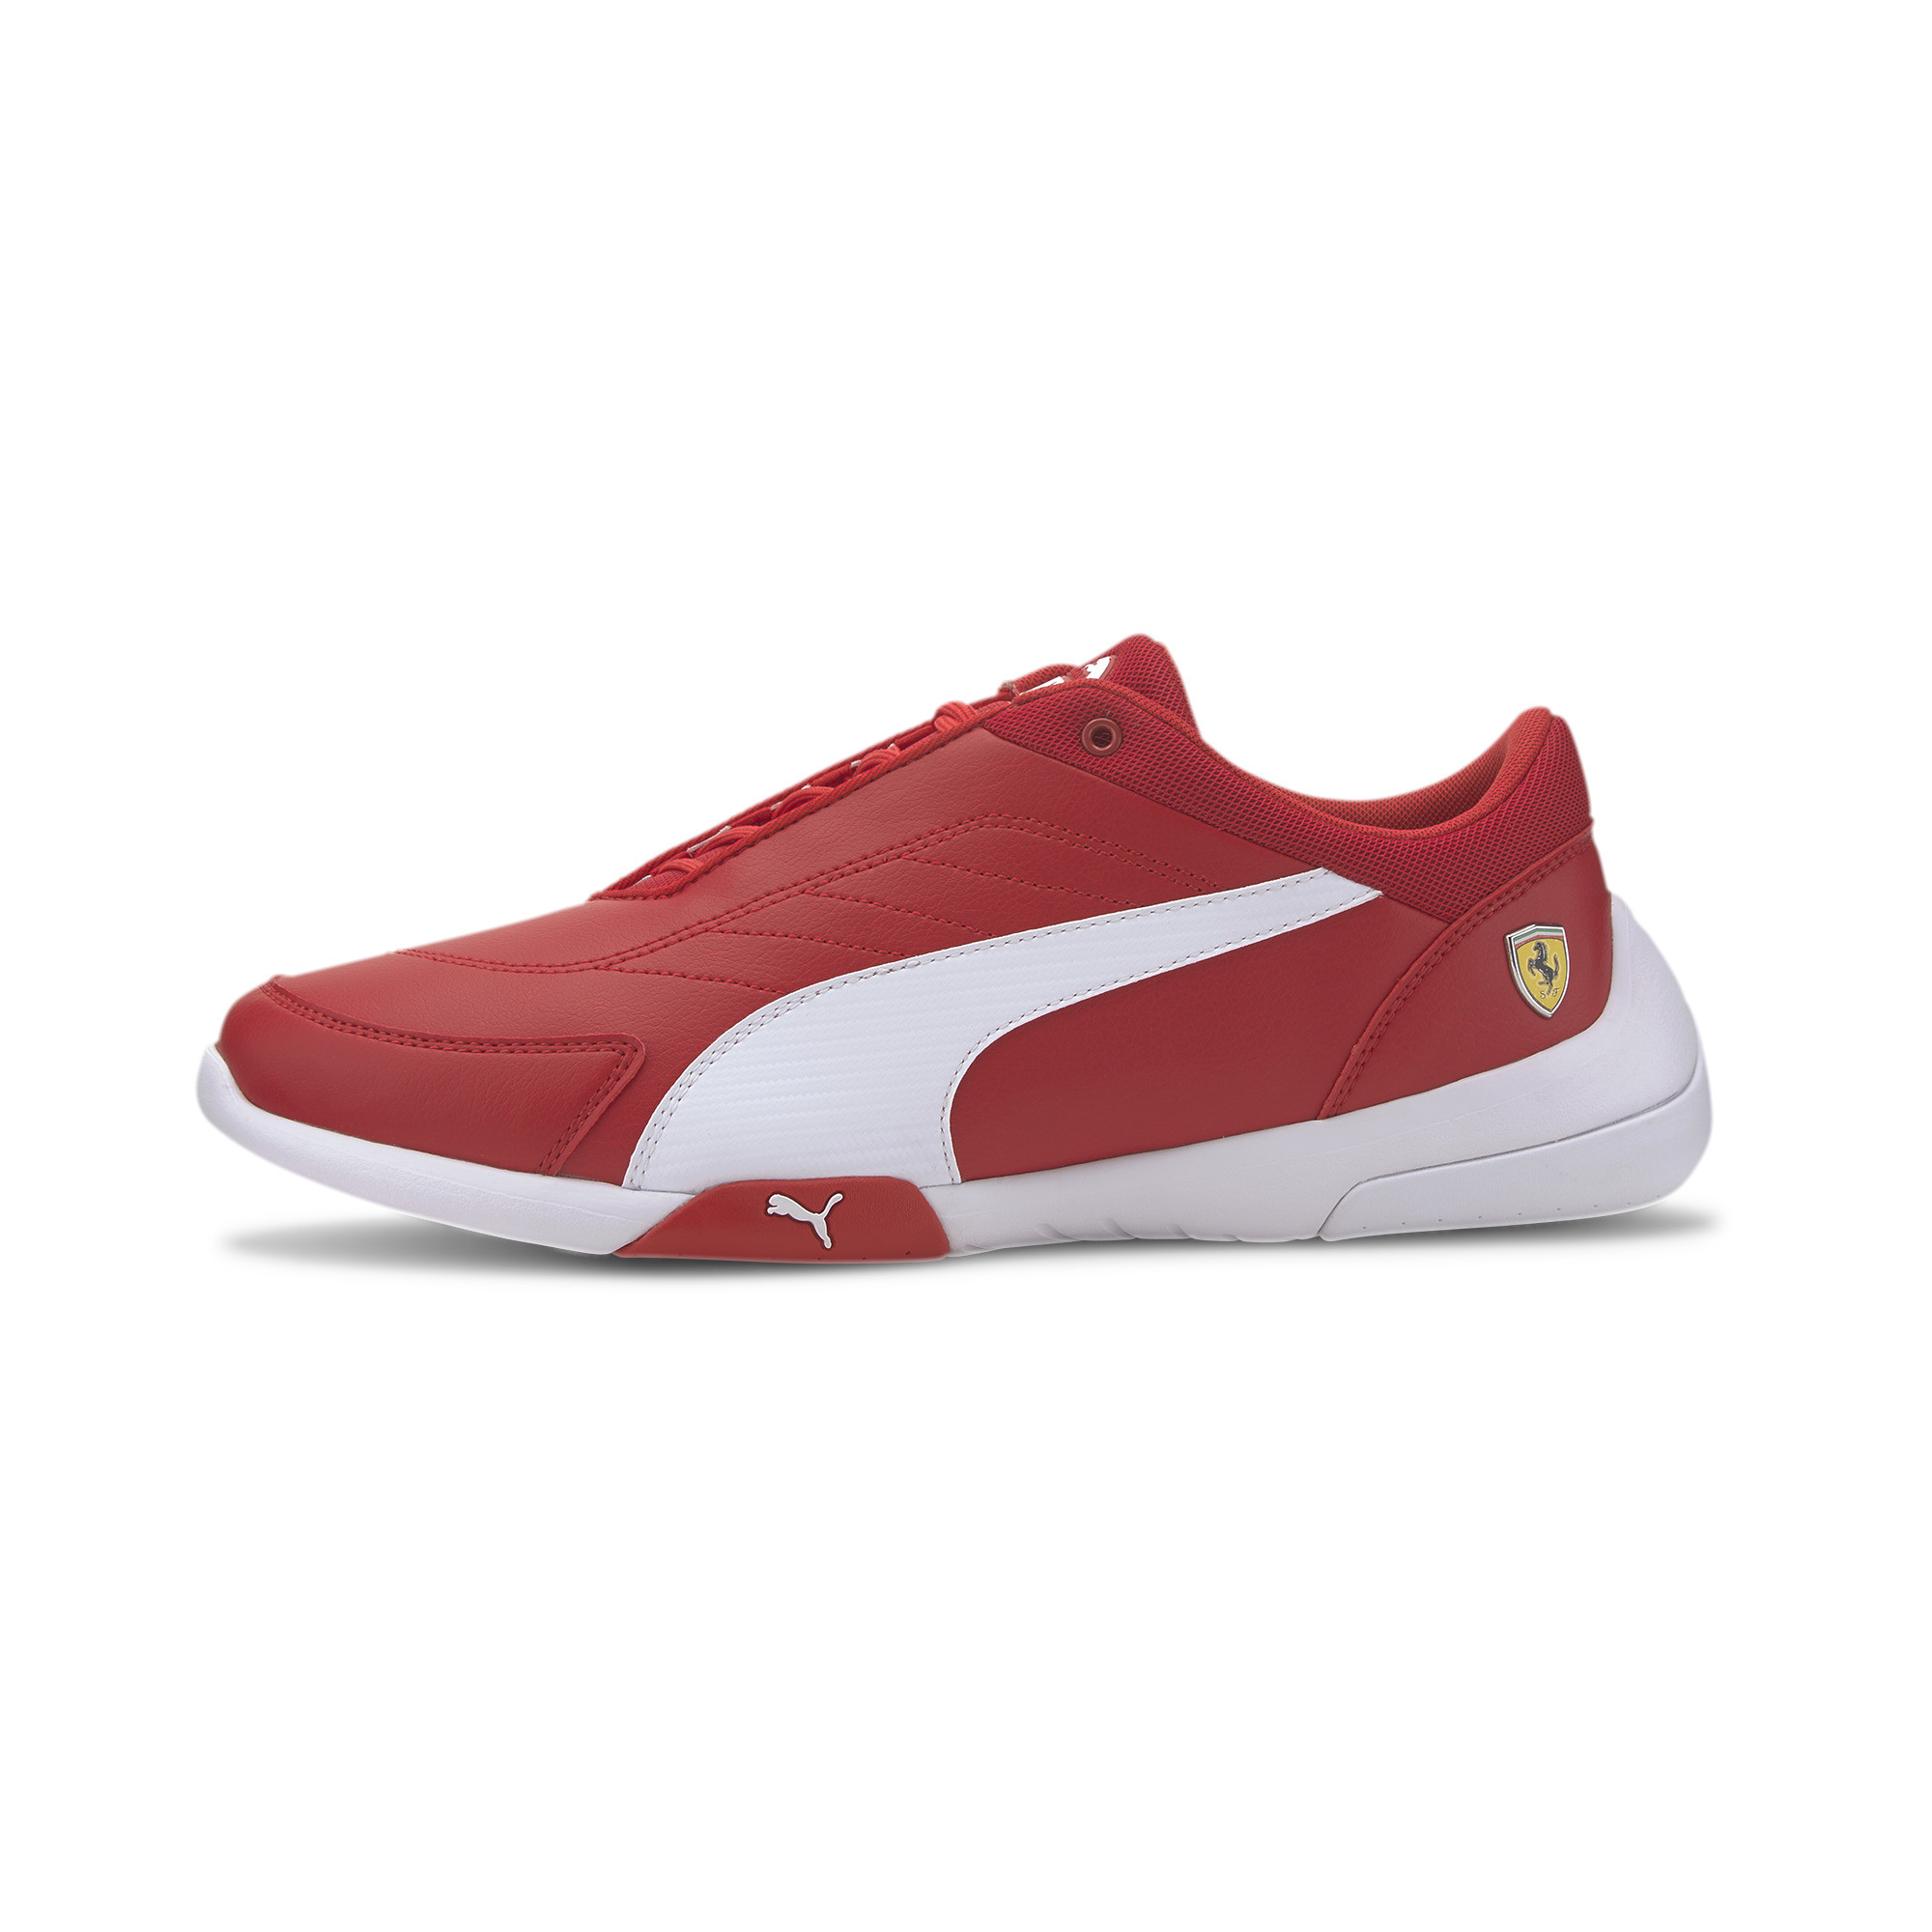 PUMA-Men-039-s-Scuderia-Ferrari-Kart-Cat-III-Motorsport-Shoes thumbnail 18